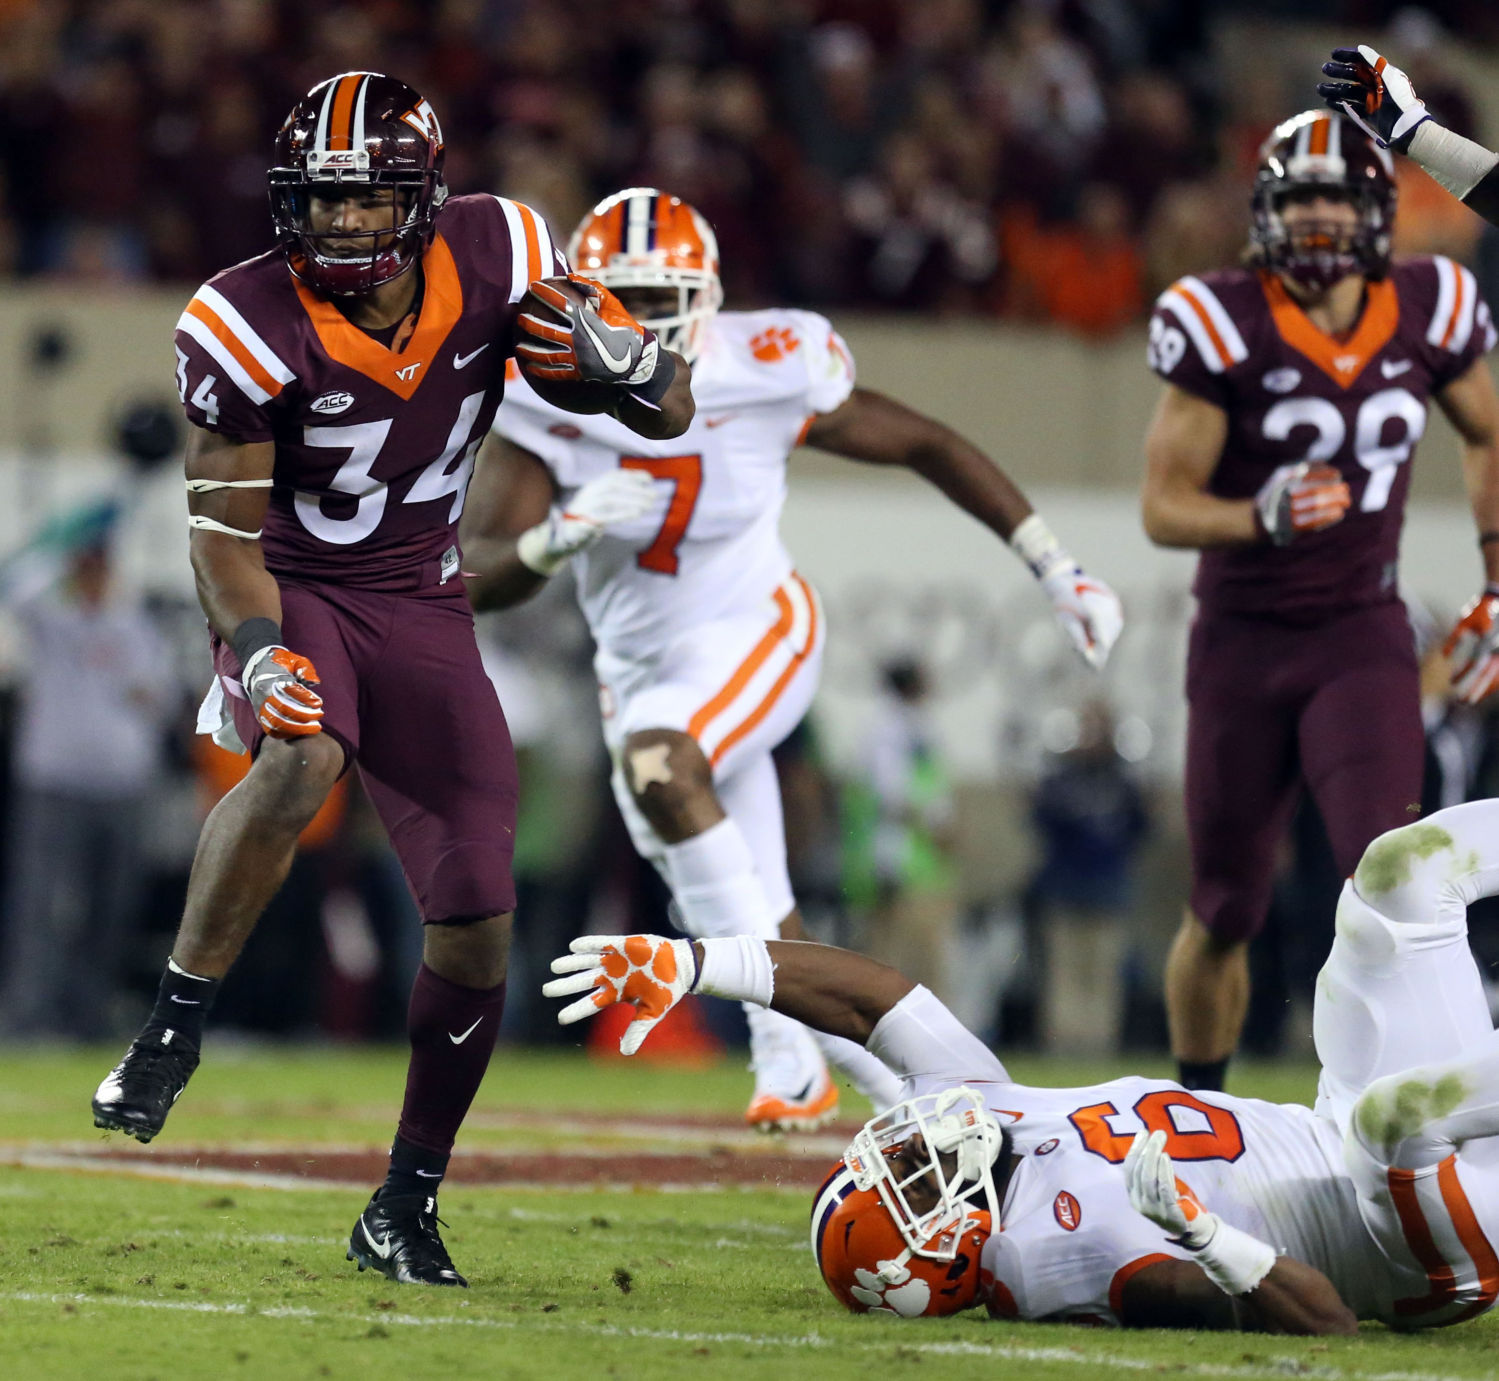 Virginia Tech beats Boston College, 23-10, now 5-1 on season